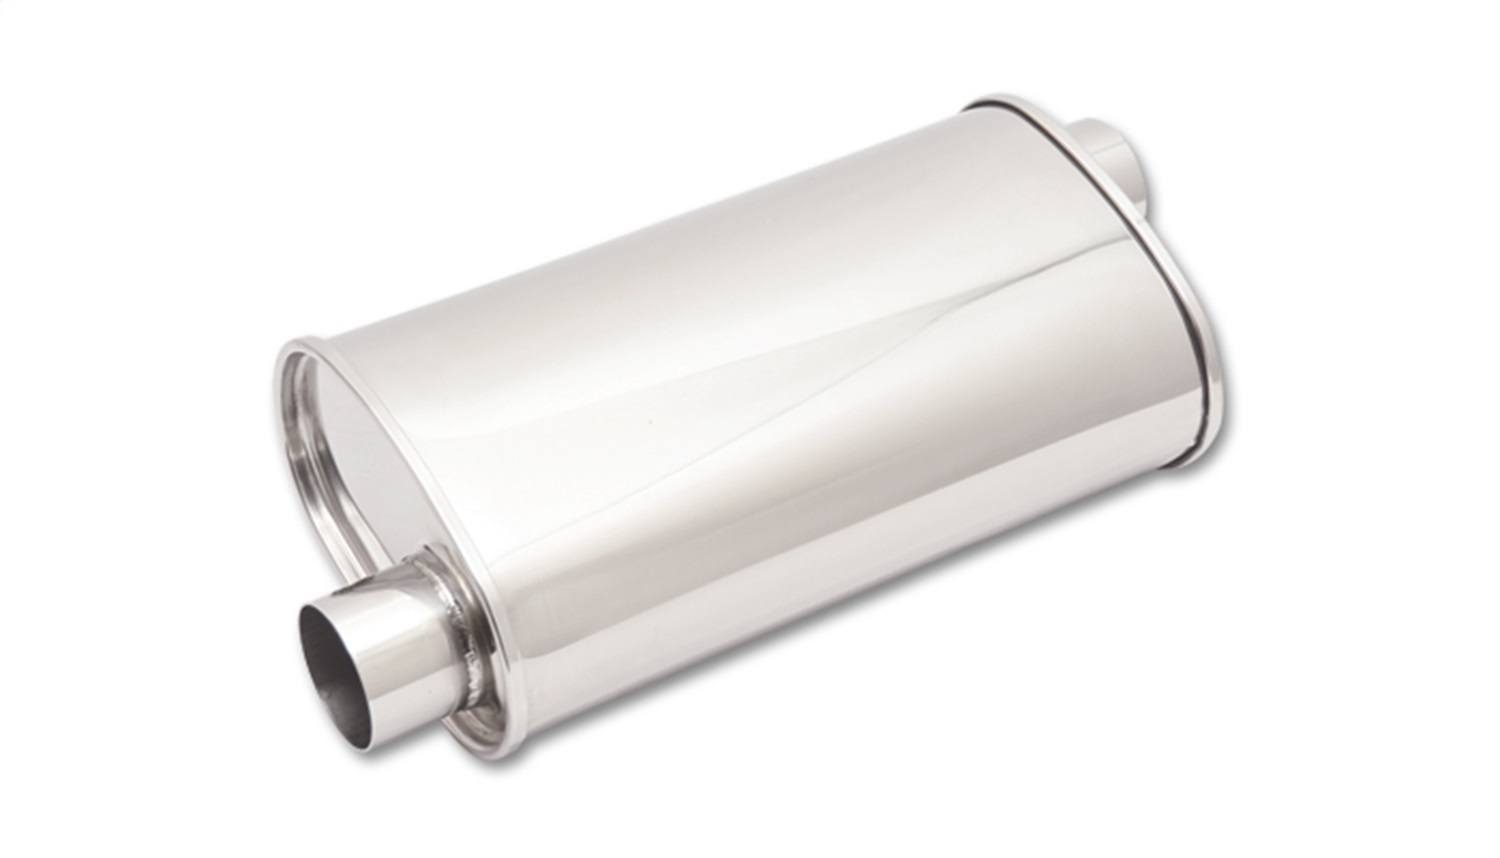 Offset Pipe Design Dual Oval Out 2 1//4 inch Inlet Exhaust Tips Stainless Steel